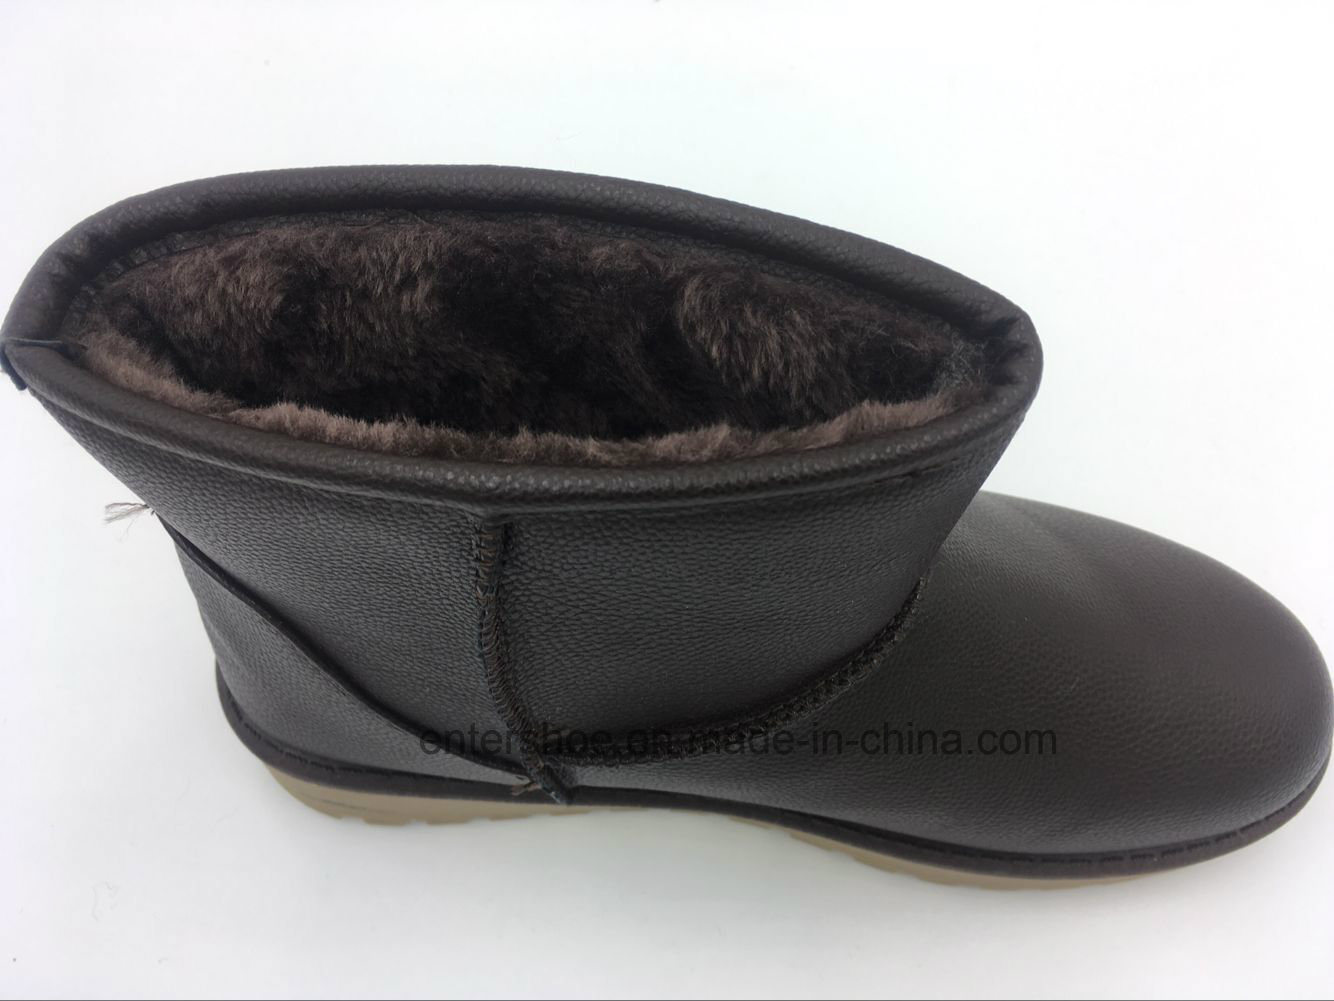 Winter Warm Women PU Snow Boots with PVC Outsole (ET-XK160238W)